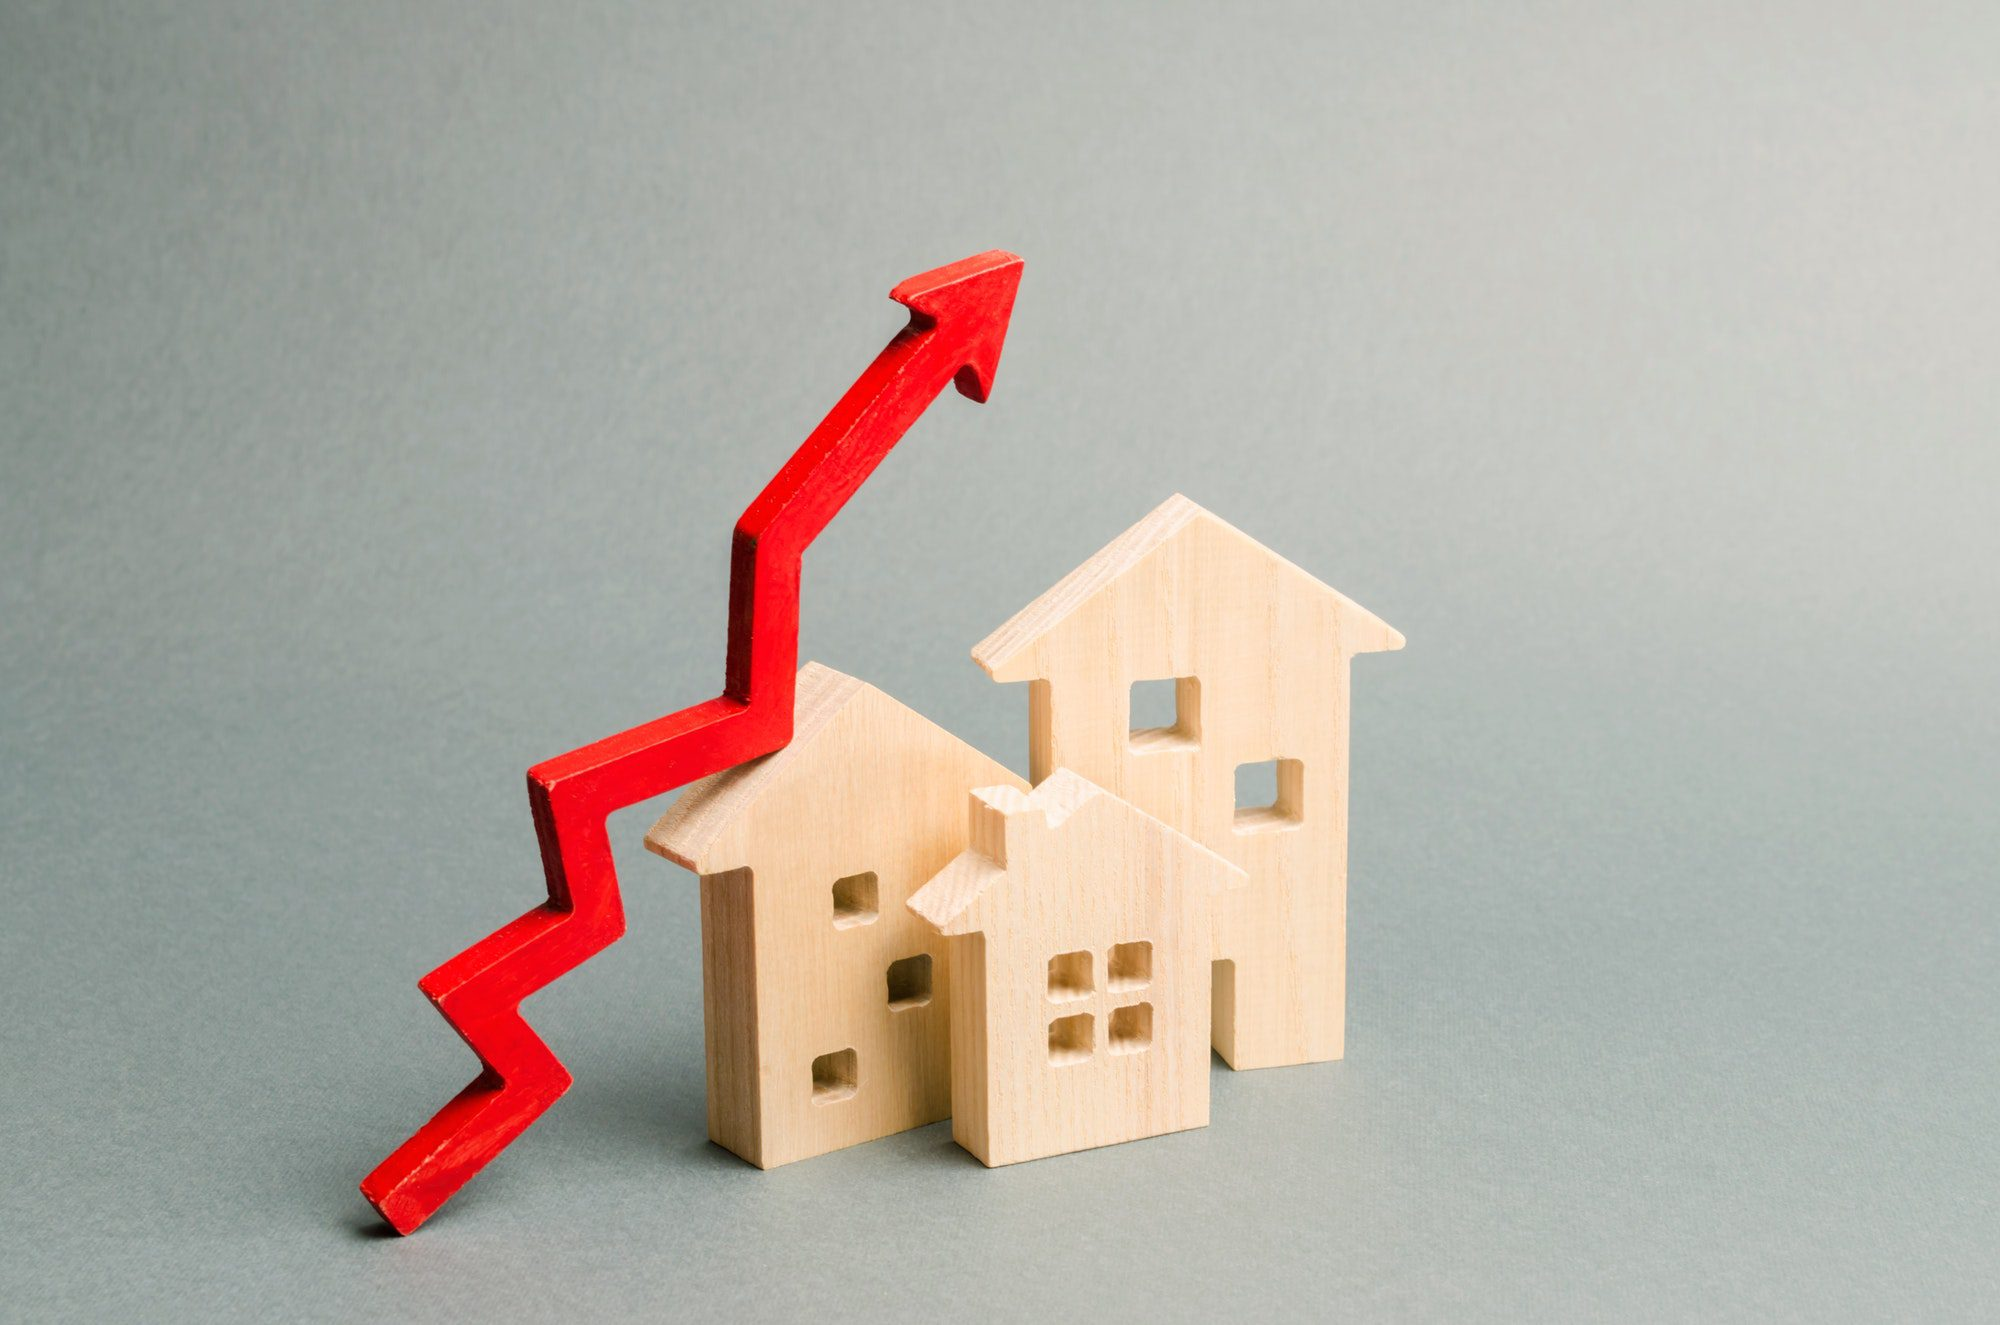 Miniature wooden houses and red arrow showing the rise in Medicare premiums.